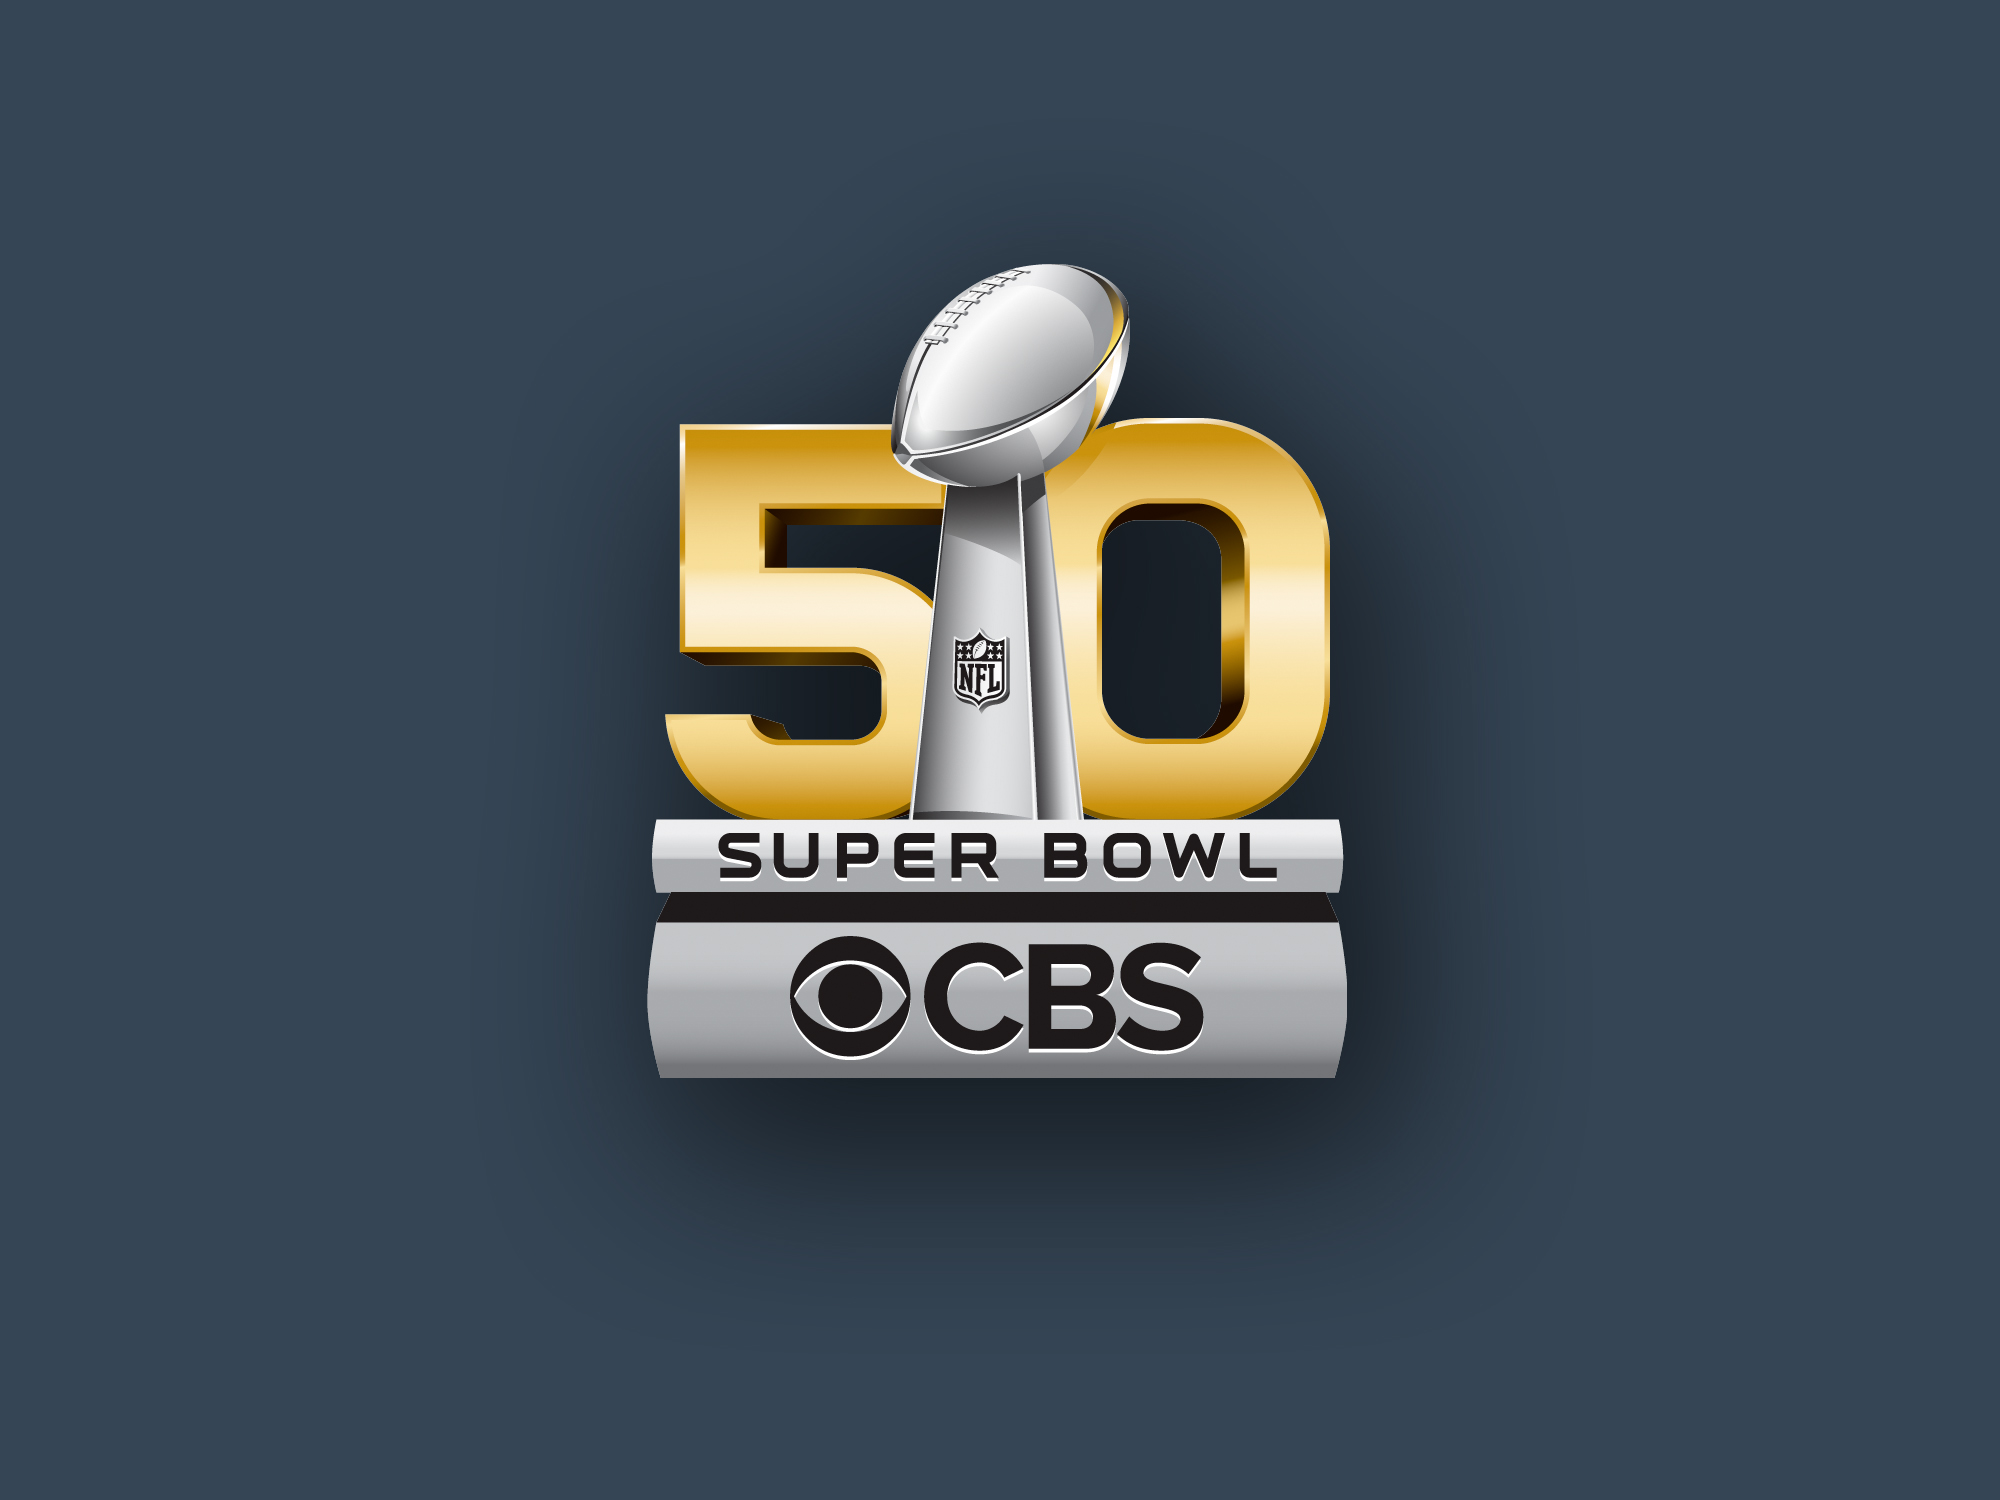 superbowl ads The latest tweets from superbowlad (@superbowlad) providing the best super bowl advertising news since 1998 watch the new ads, and revisit your old favorites.